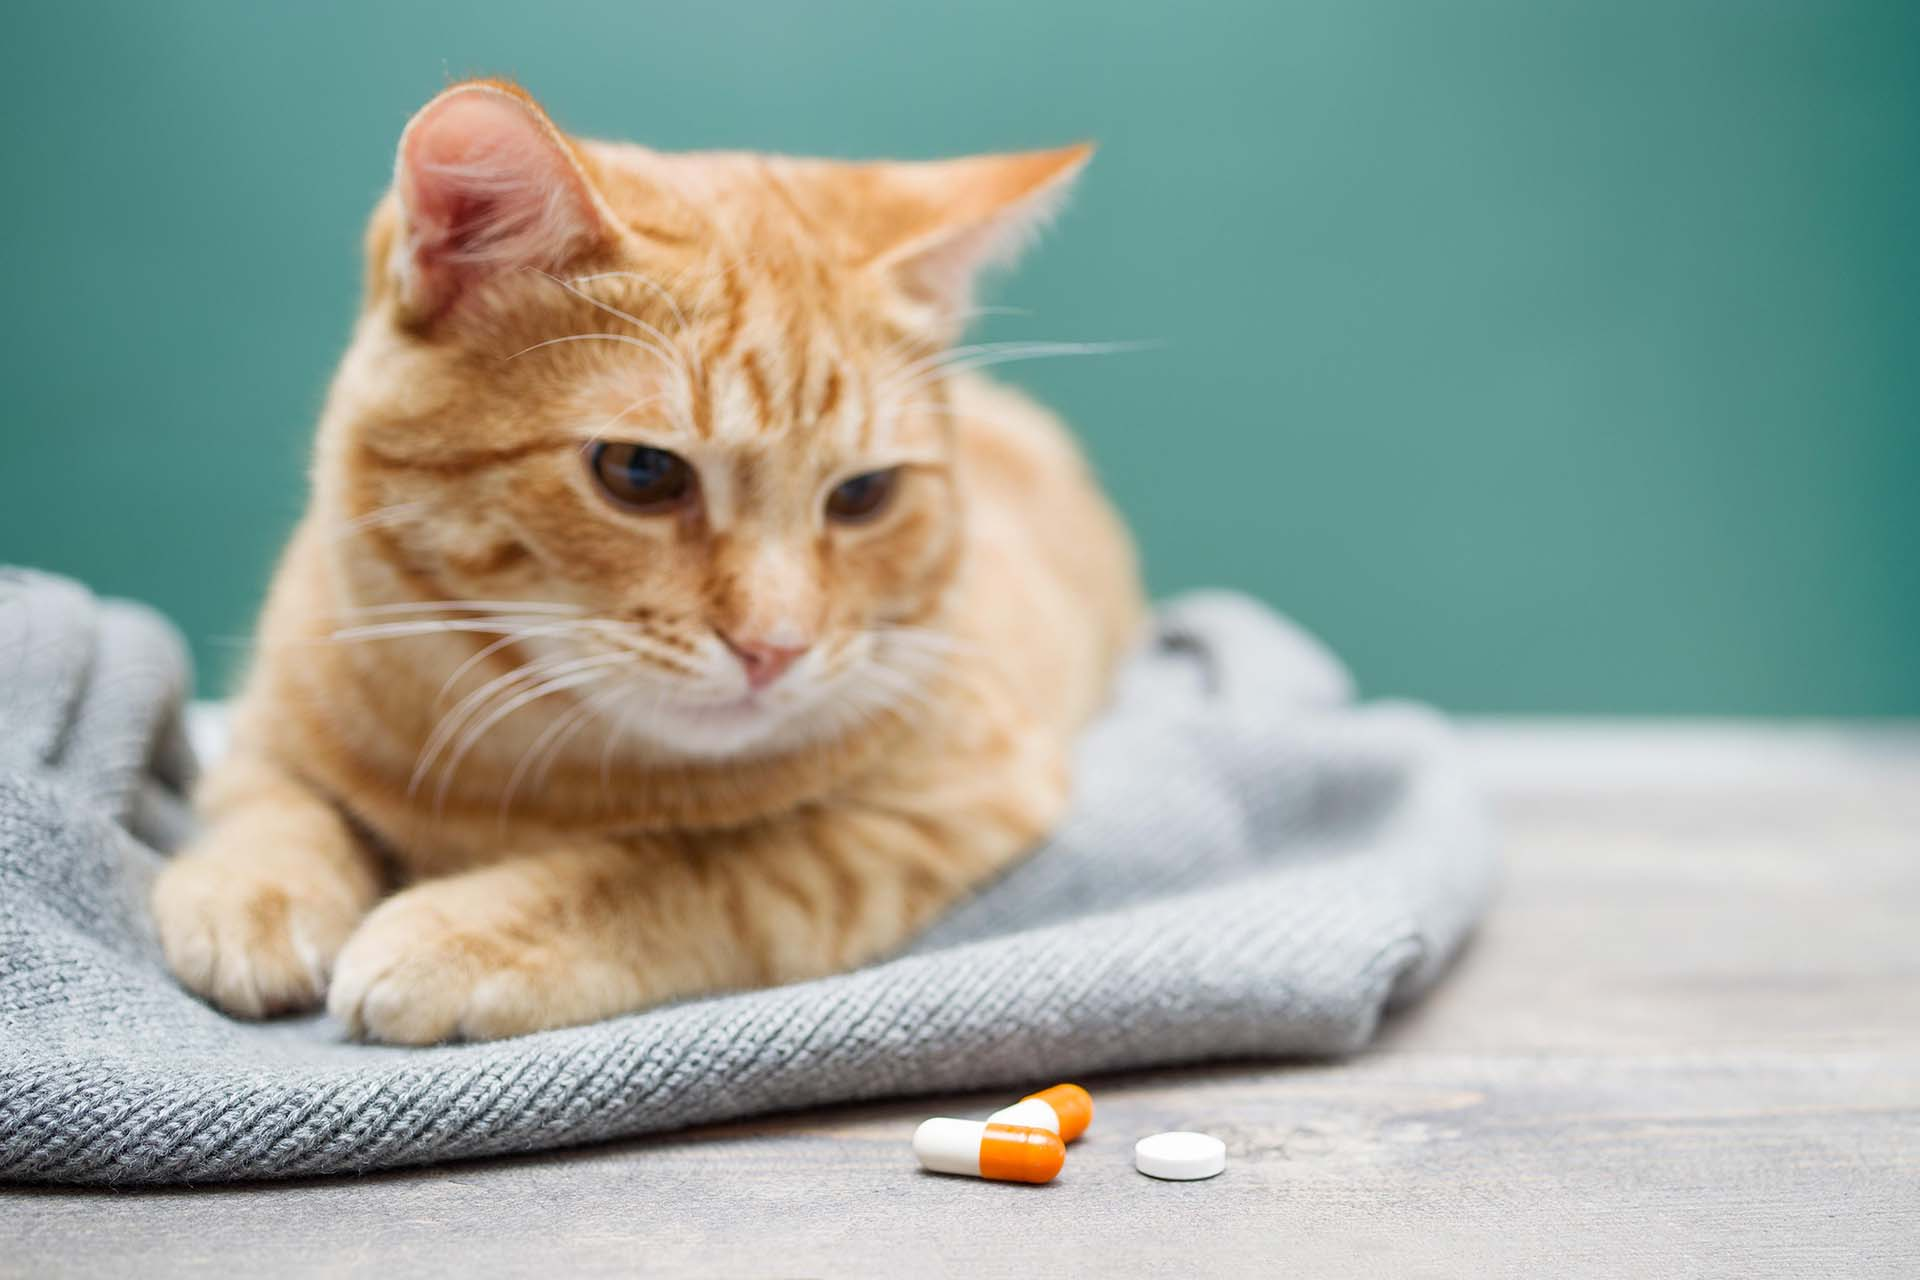 What Are the Uses of Mirtazapine for Cats?